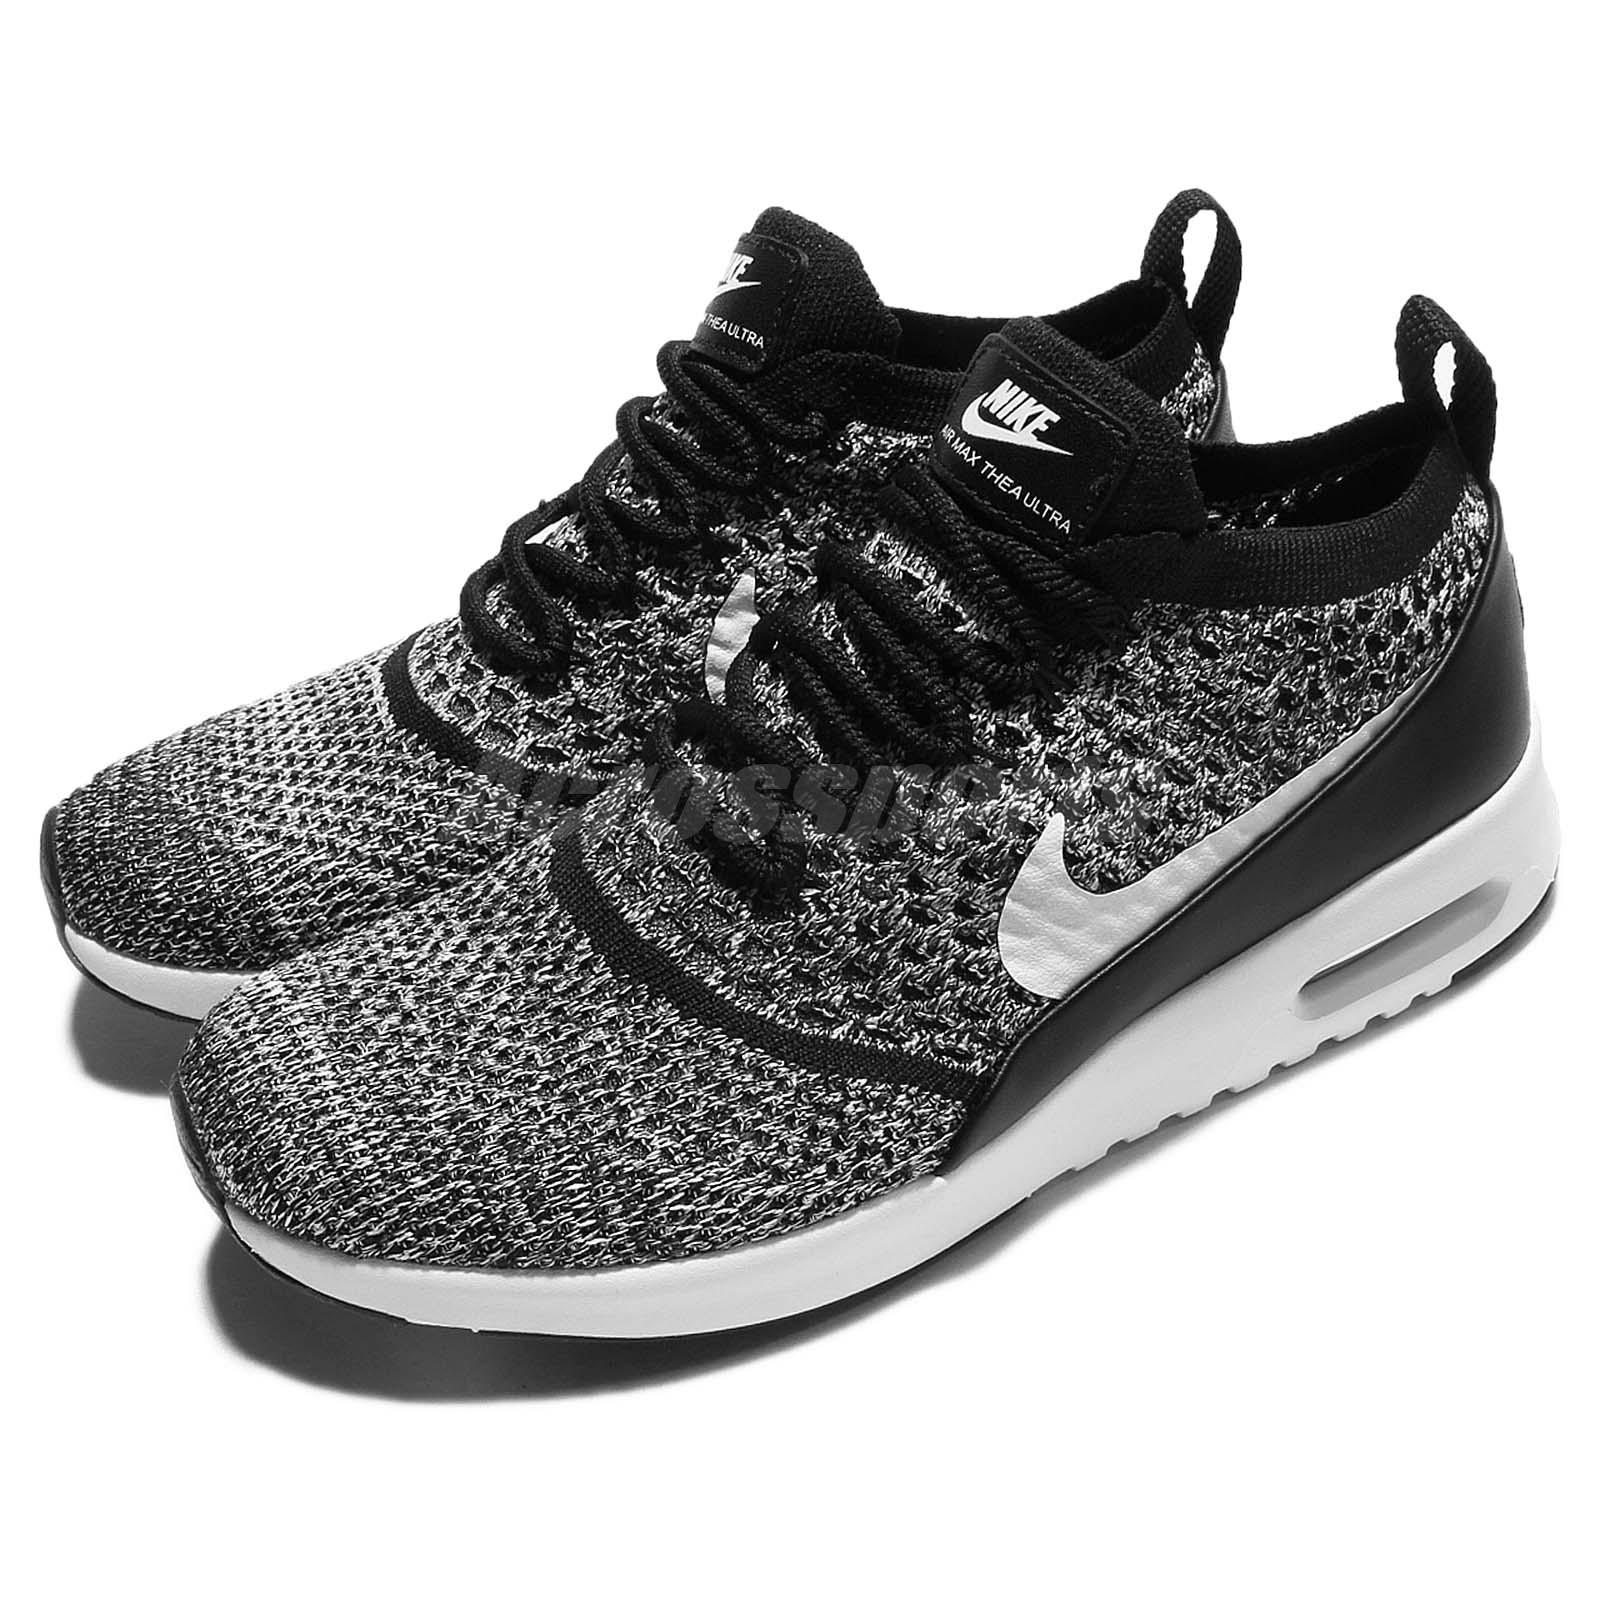 wmns nike air max thea ultra fk flyknit black white women. Black Bedroom Furniture Sets. Home Design Ideas